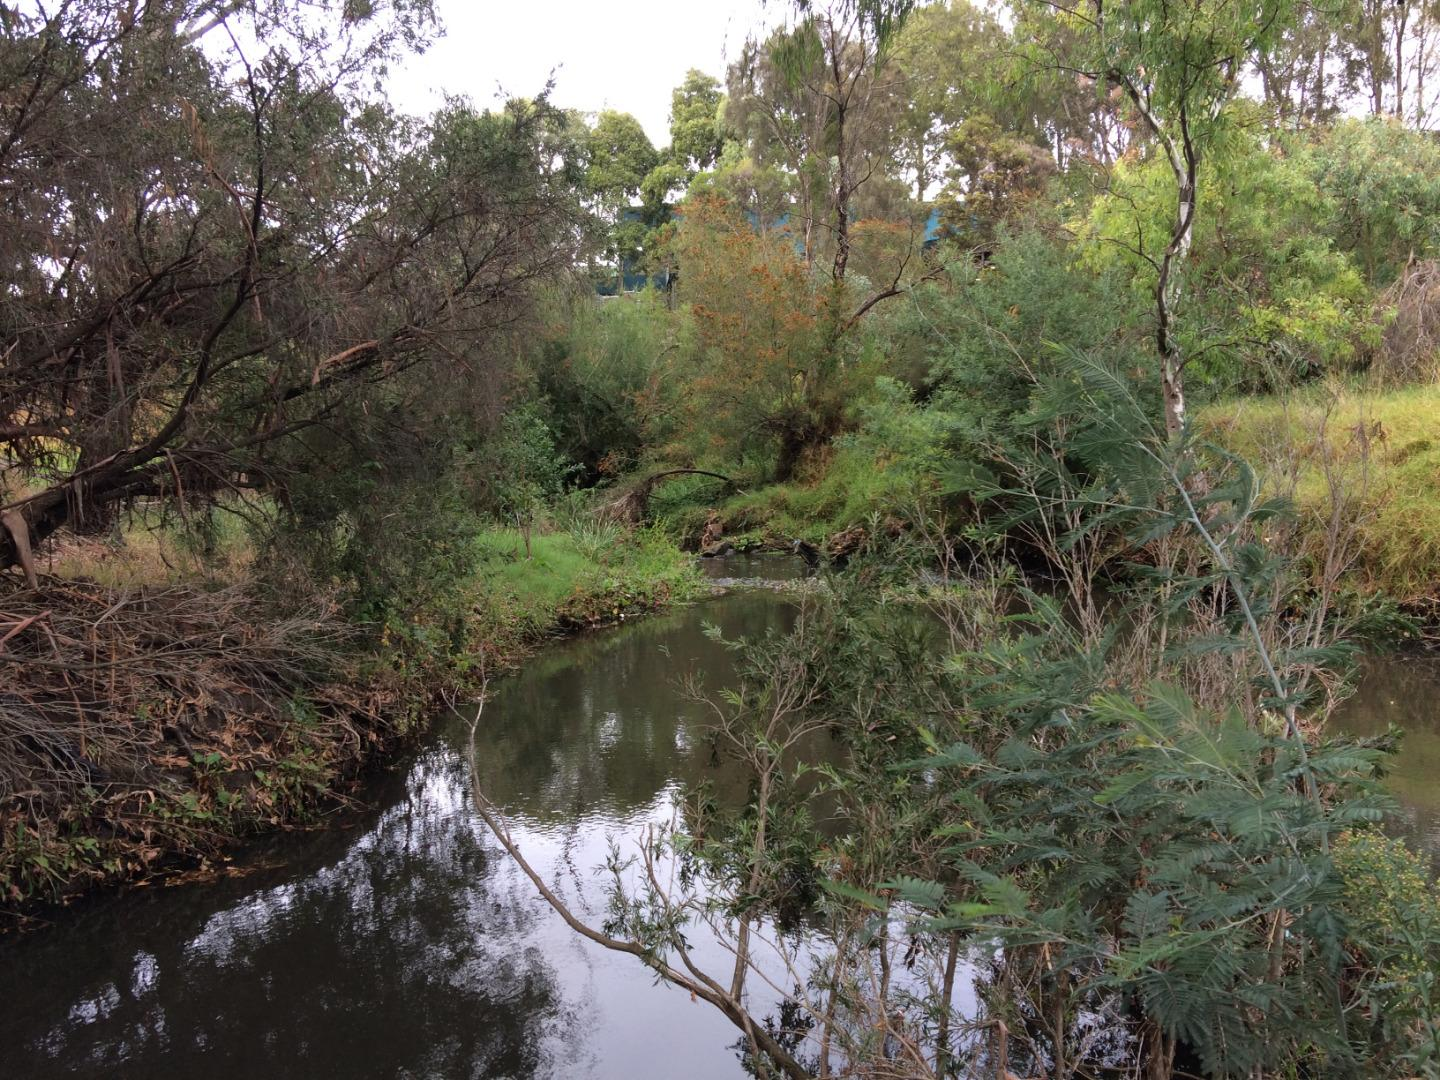 From Darebin Creek drain, looking downstream from Murry Road Bridge